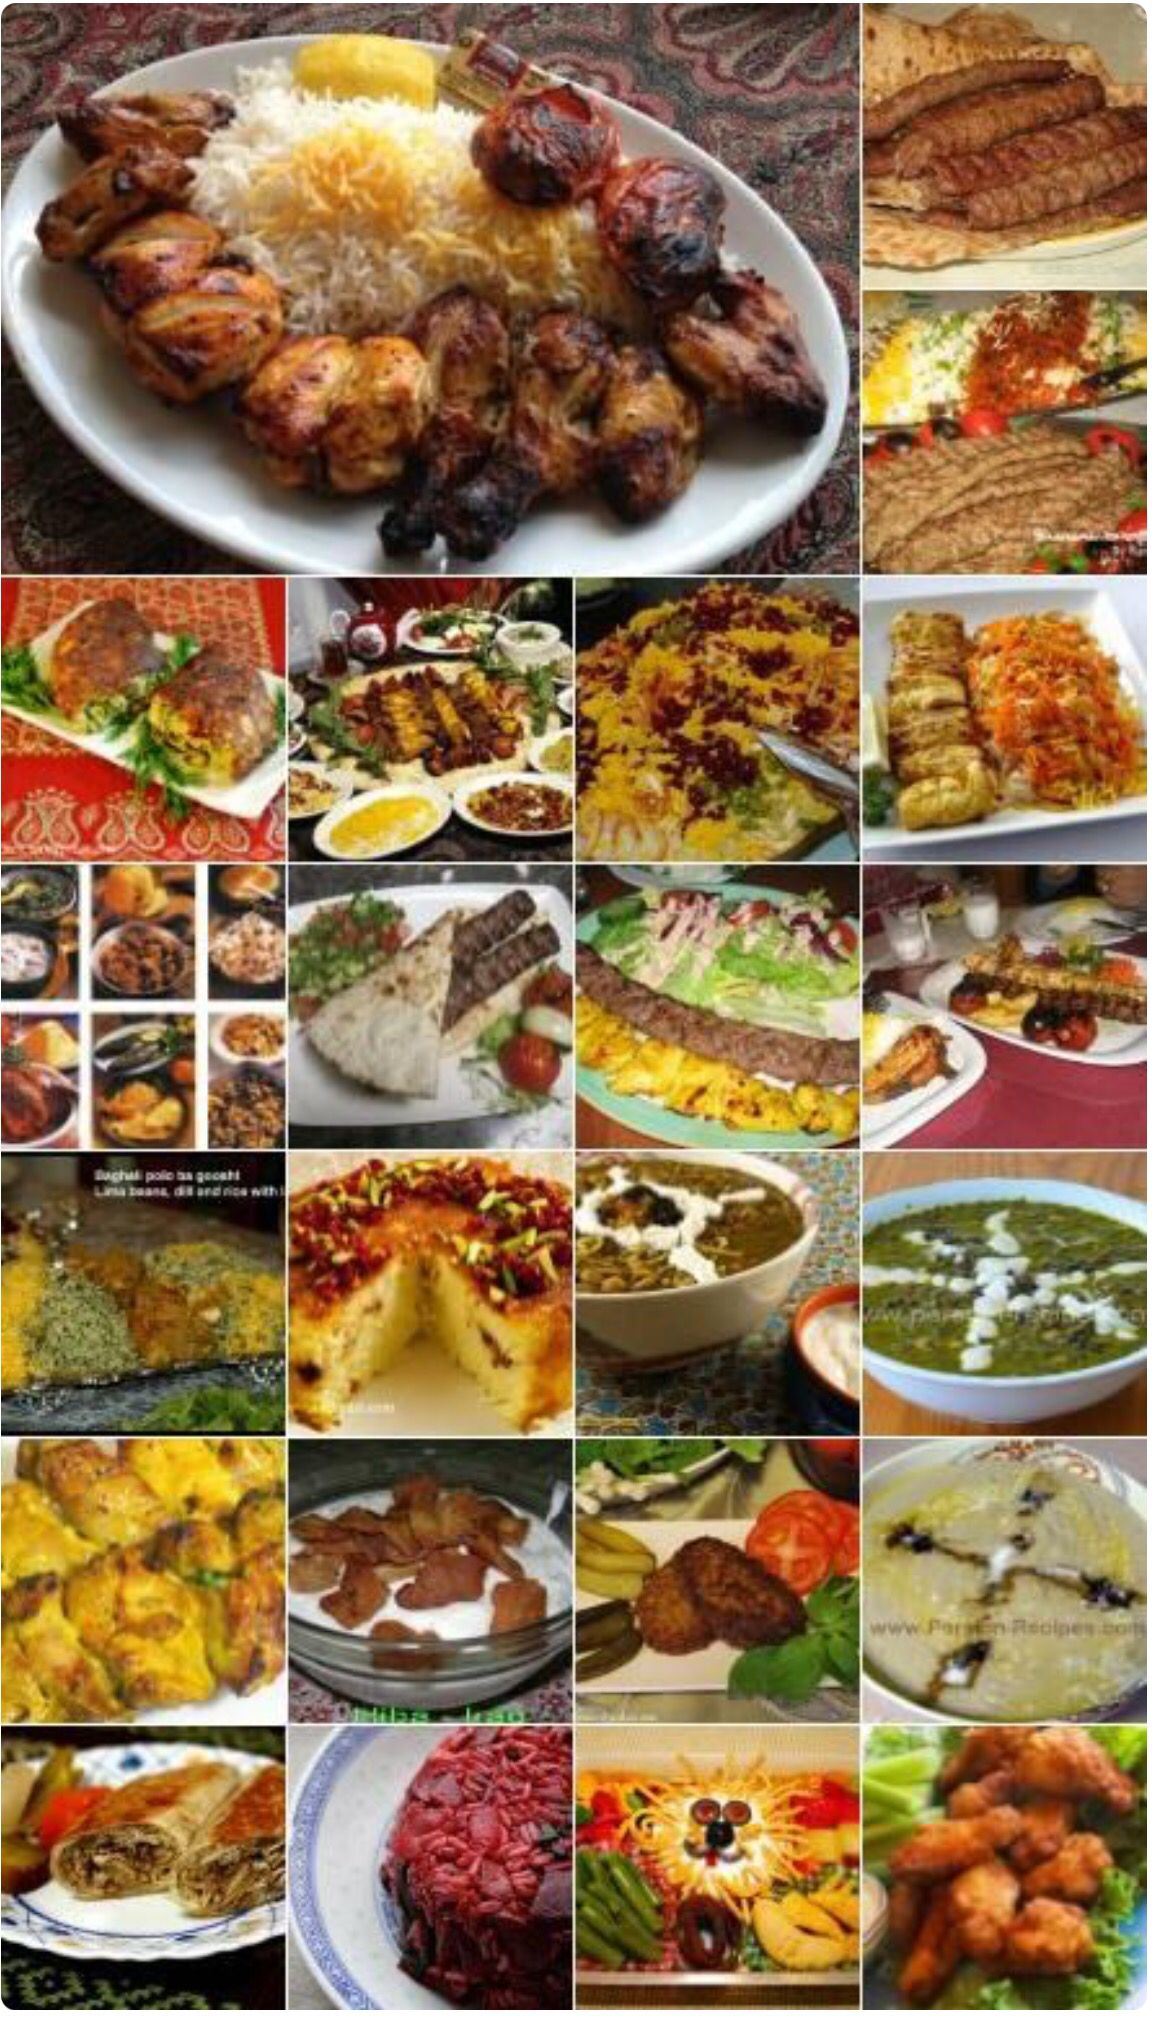 Pin by Narges Parsi on Iranian Cuisine in 2019 | Iranian